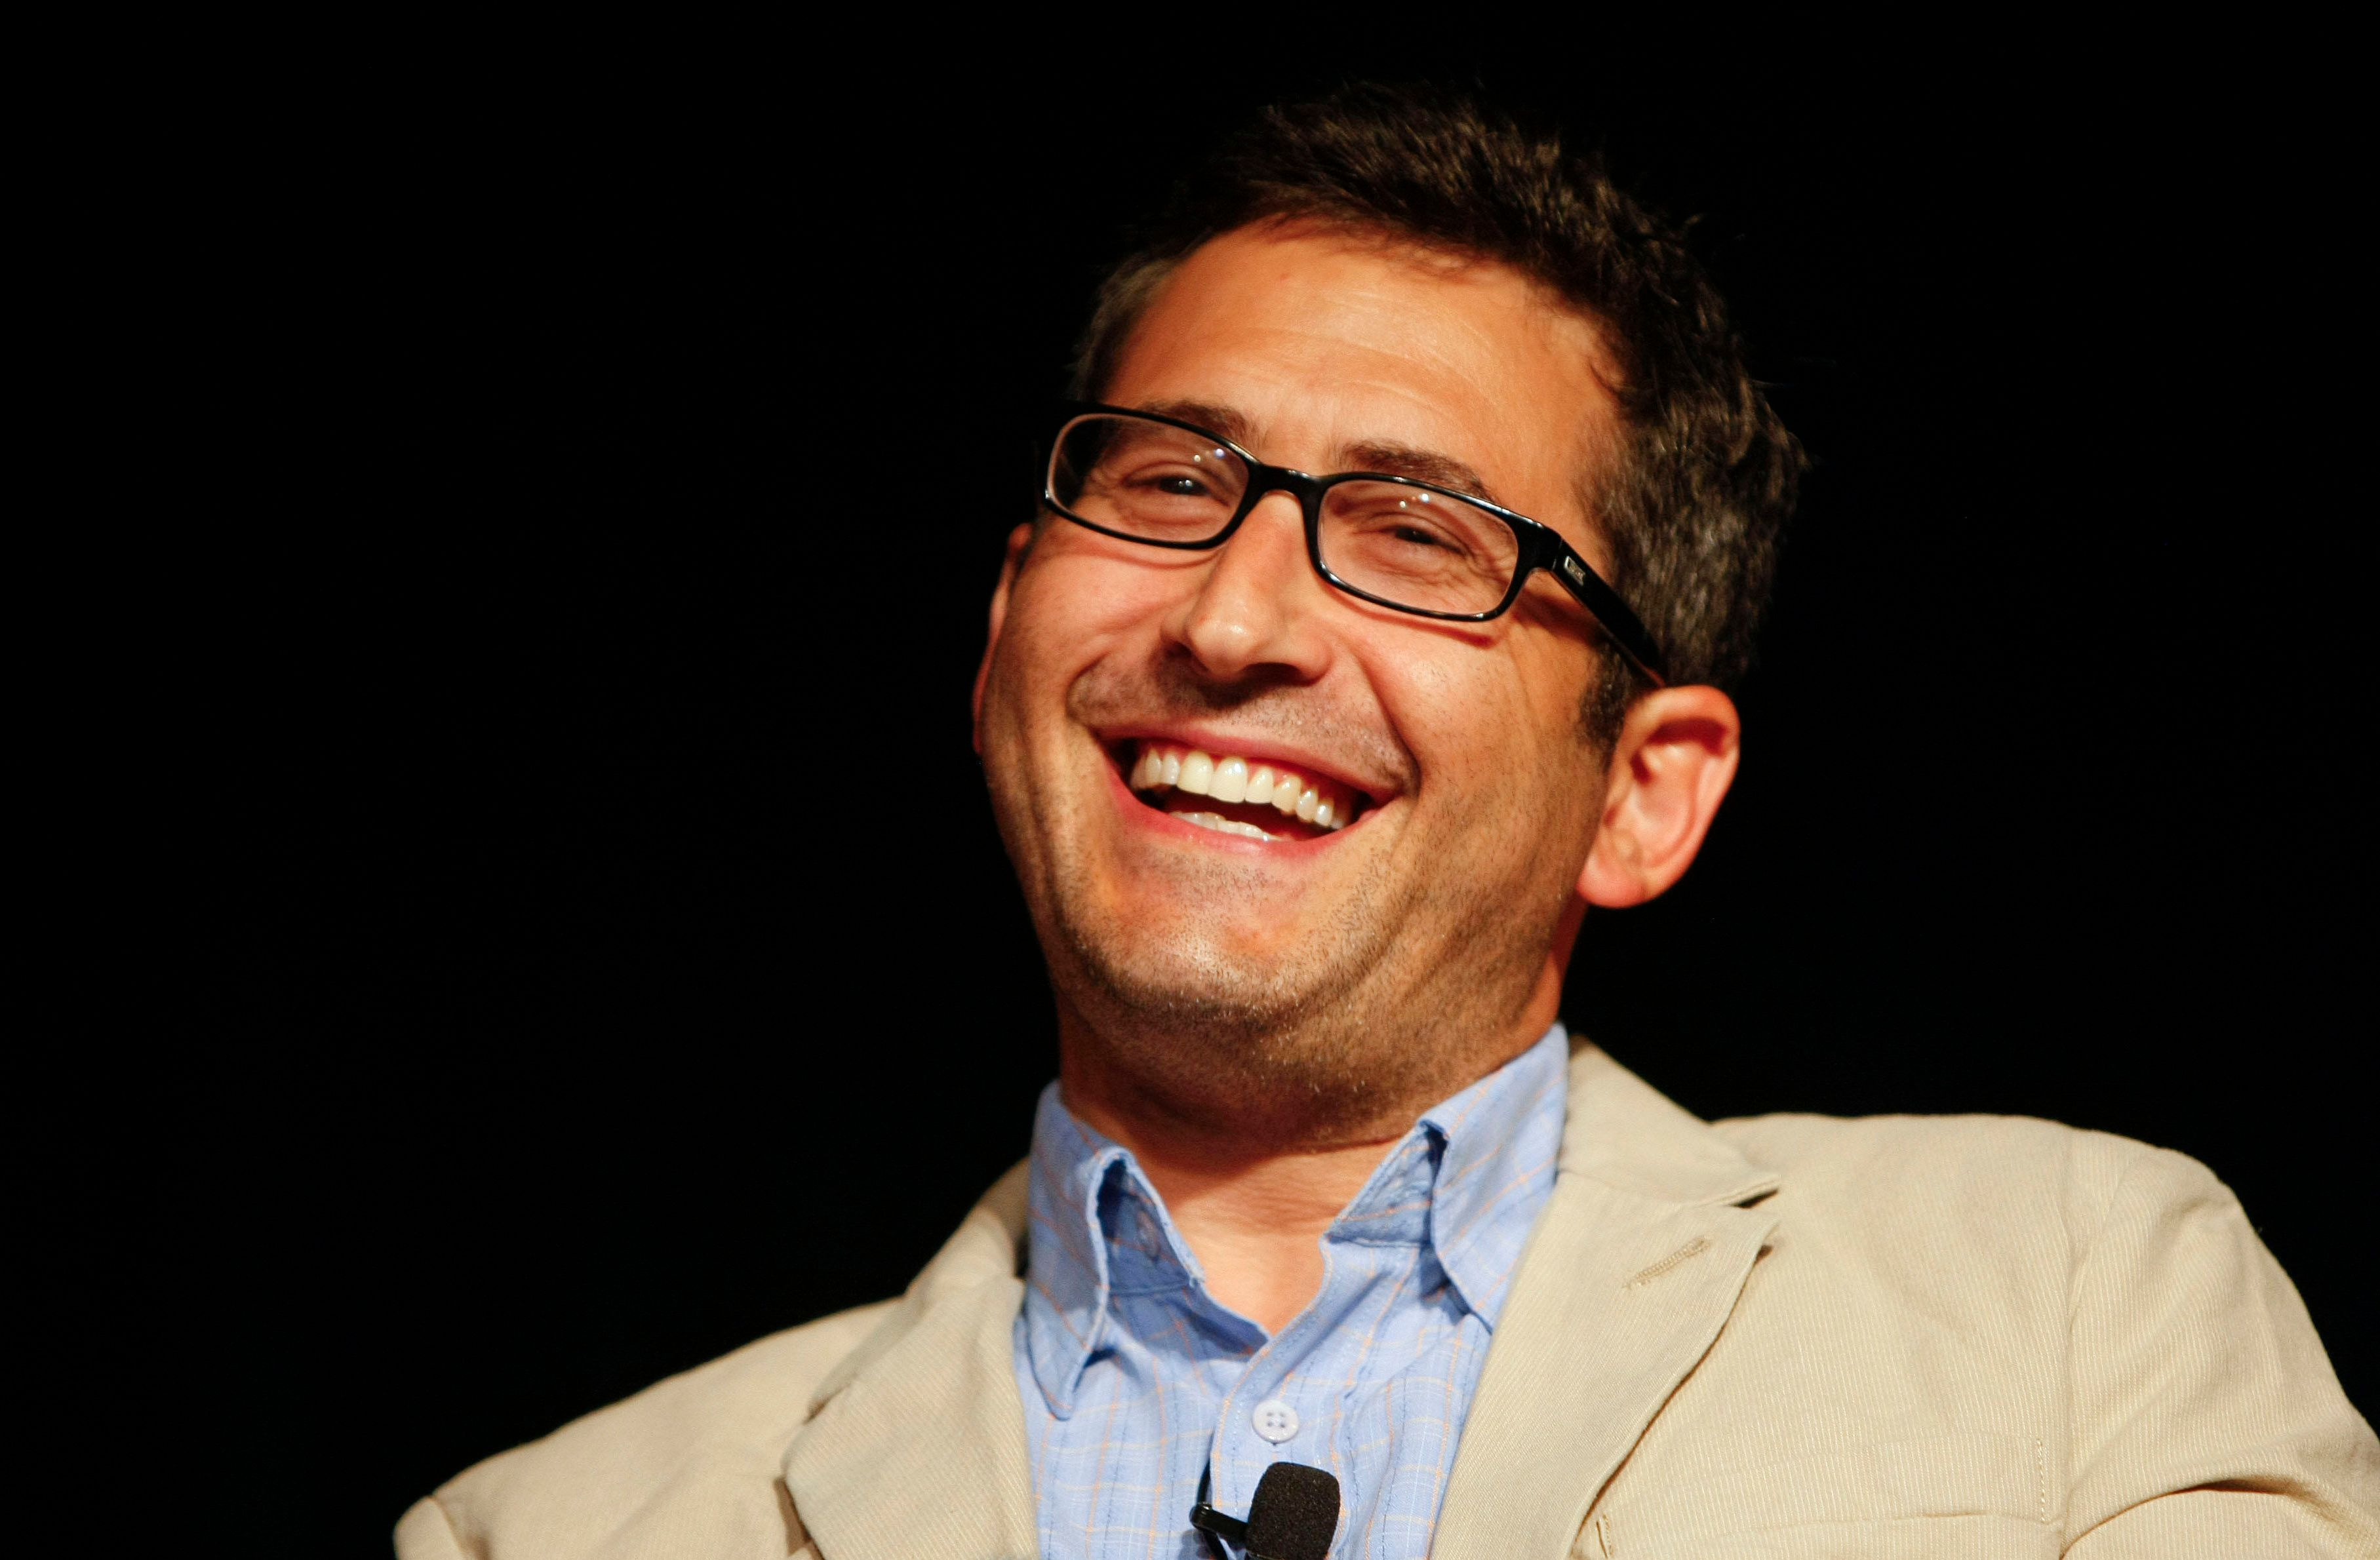 ASPEN, CO - JULY 11: Sam Seder attends Comedy Art festival presents: 'The News Has No Clothes' on day 6 of Aspen Ideas Festival 2010 on July 11, 2010 in Aspen, Colorado. (Photo by Riccardo S. Savi/WireImage)